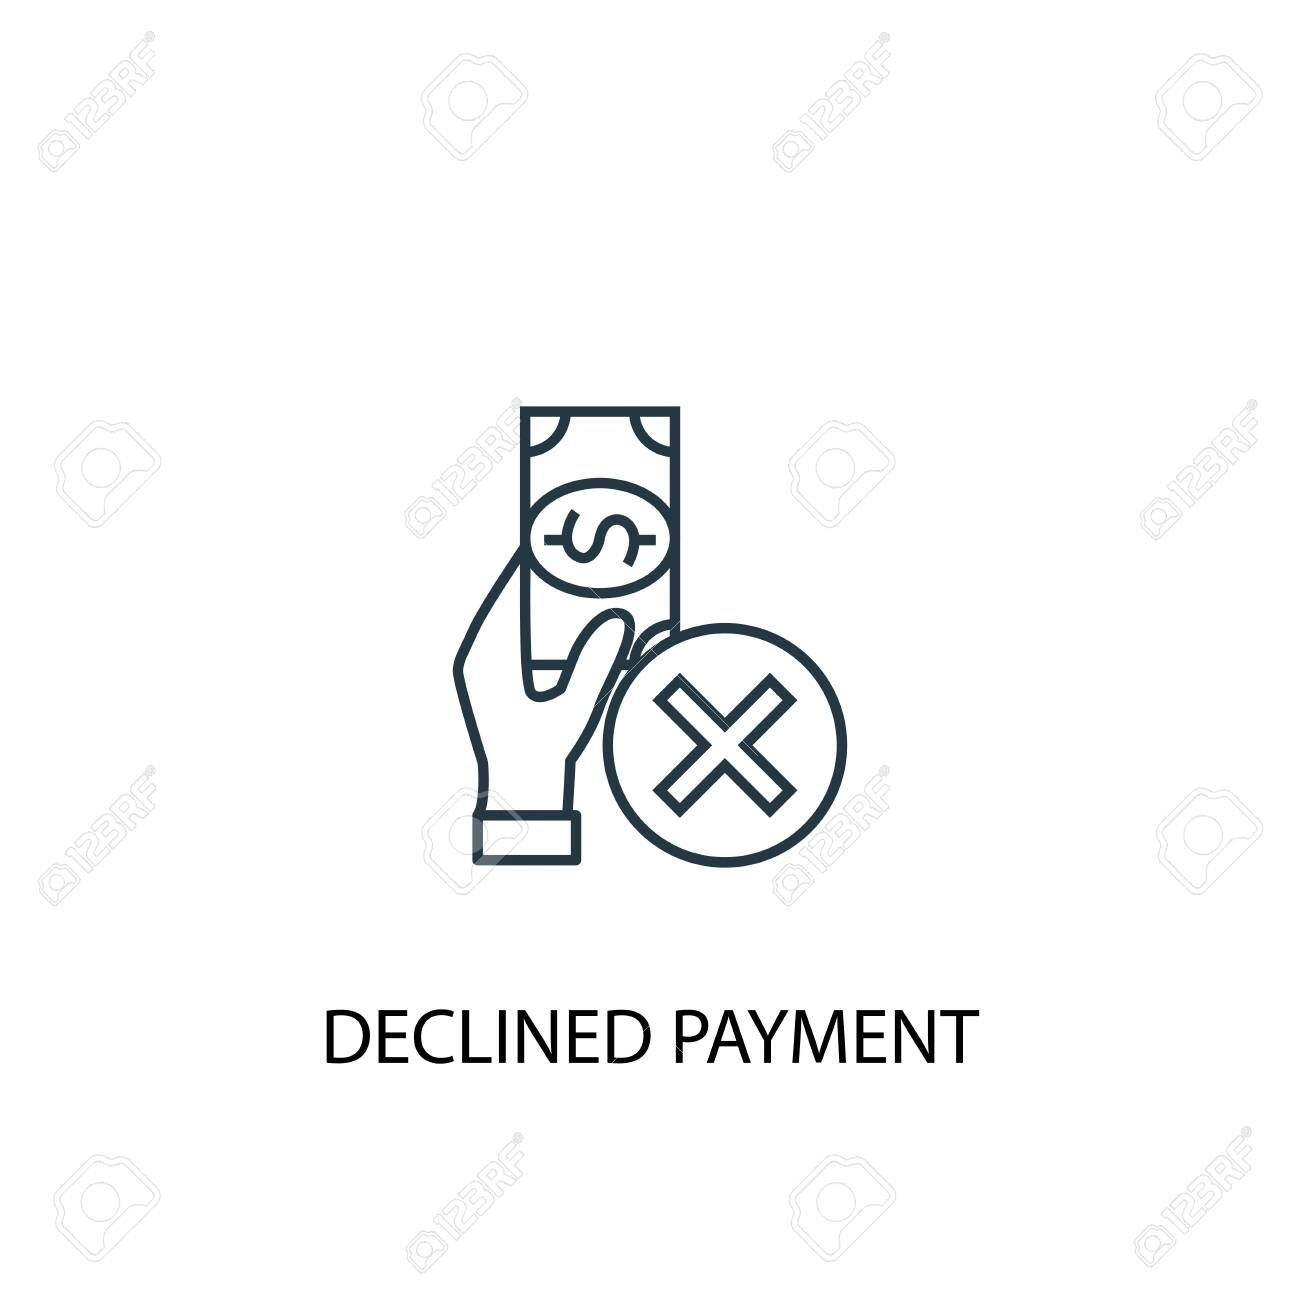 declined payment concept line icon Simple element illustration declined payment concept outline symbol design Can be used for web and mobile